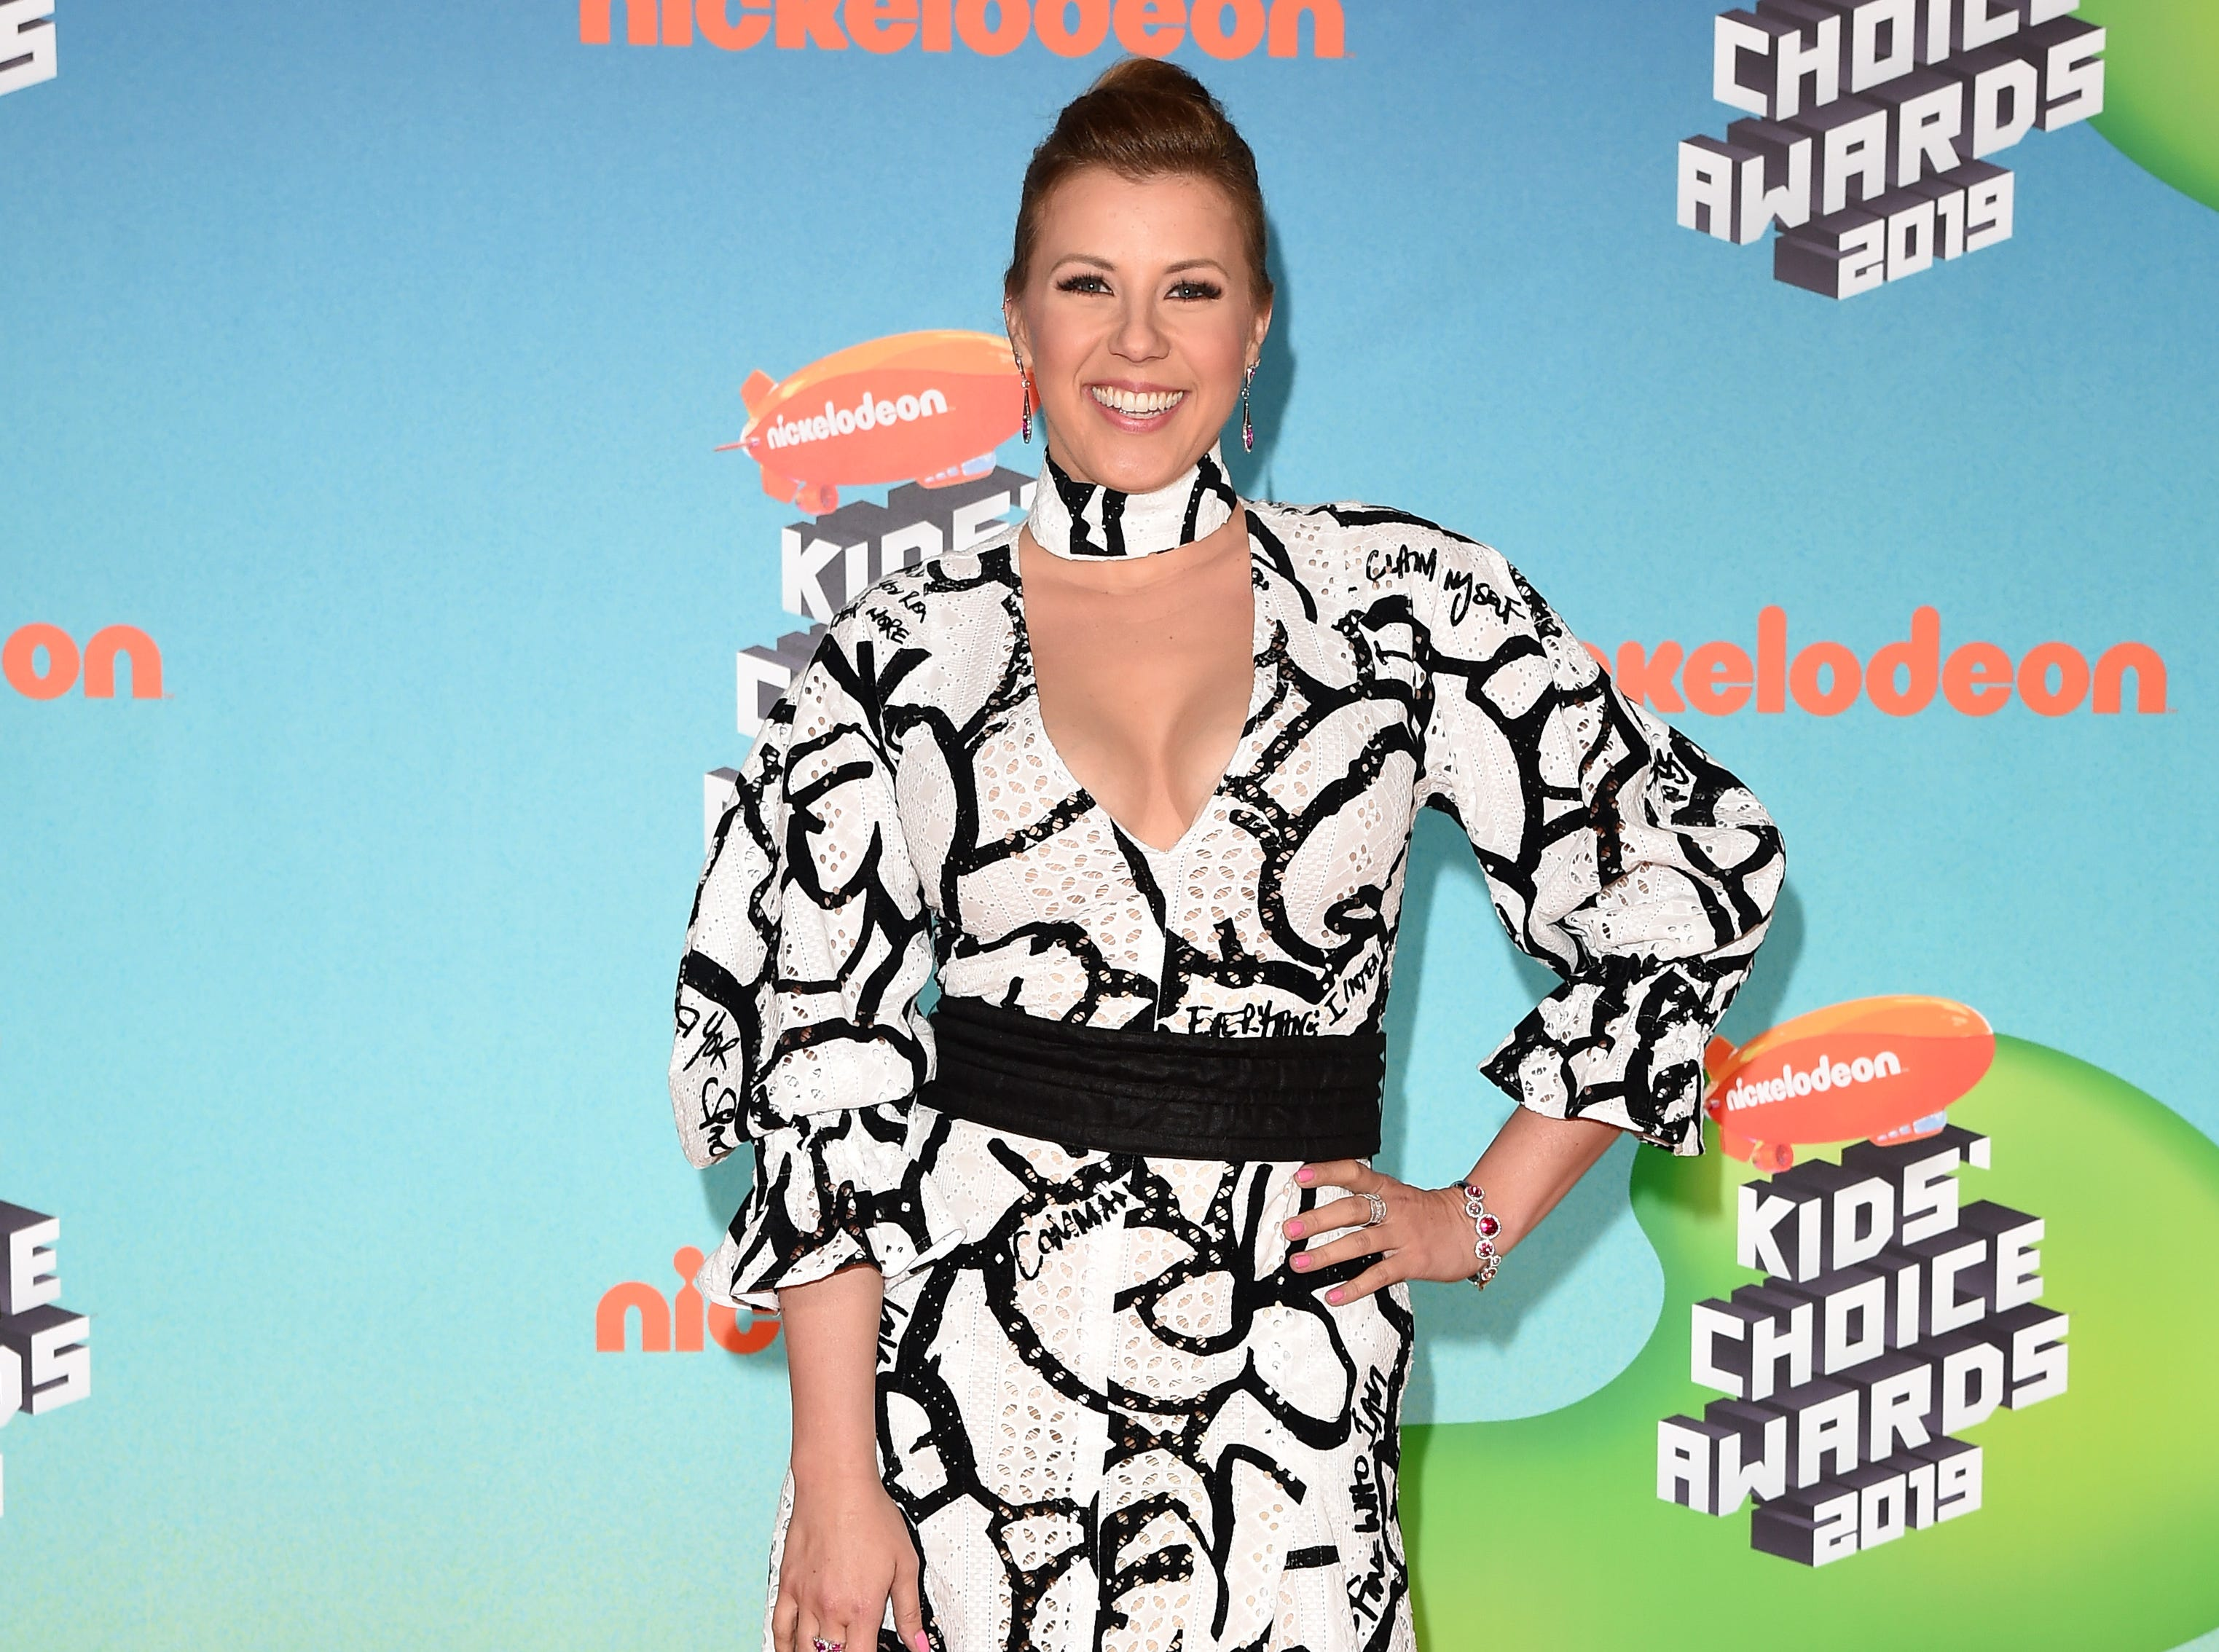 LOS ANGELES, CALIFORNIA - MARCH 23: Jodie Sweetin attends Nickelodeon's 2019 Kids' Choice Awards at Galen Center on March 23, 2019 in Los Angeles, California. (Photo by Axelle/Bauer-Griffin/FilmMagic) ORG XMIT: 775314636 ORIG FILE ID: 113787527